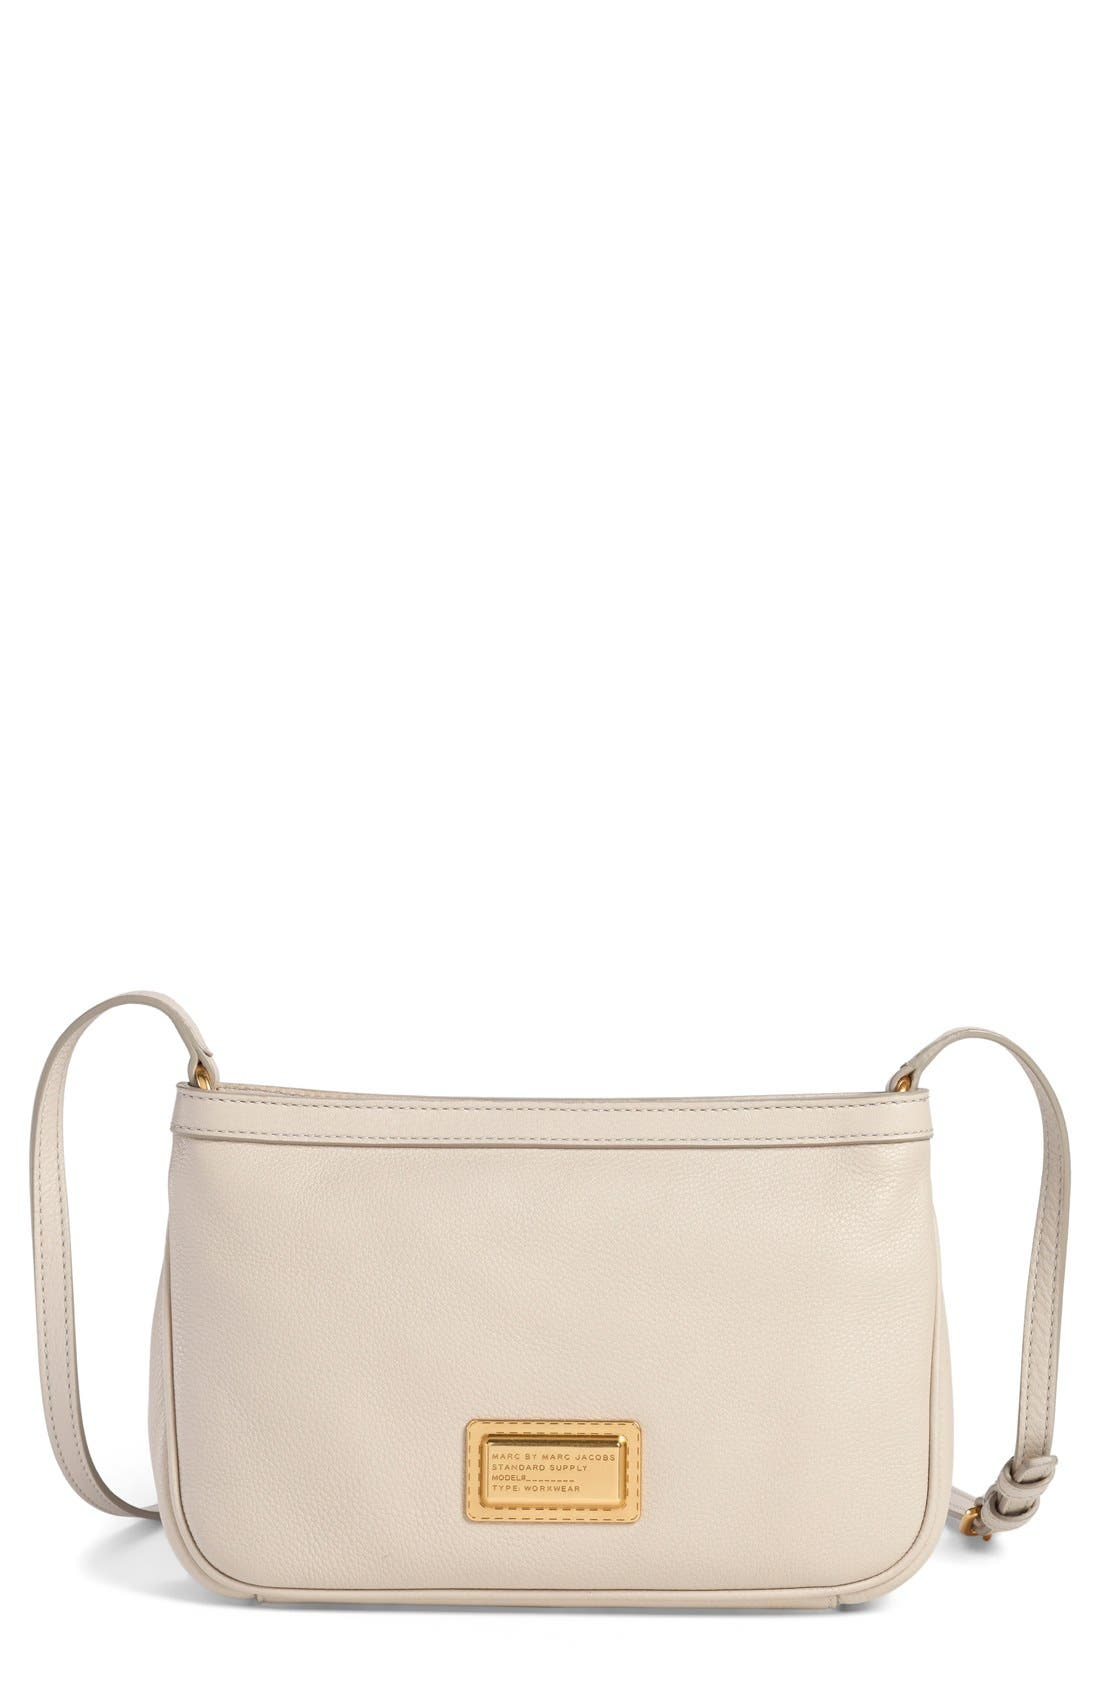 MARC BY MARC JACOBS 'Take Your Marc - Percy' Crossbody Bag,                             Main thumbnail 3, color,